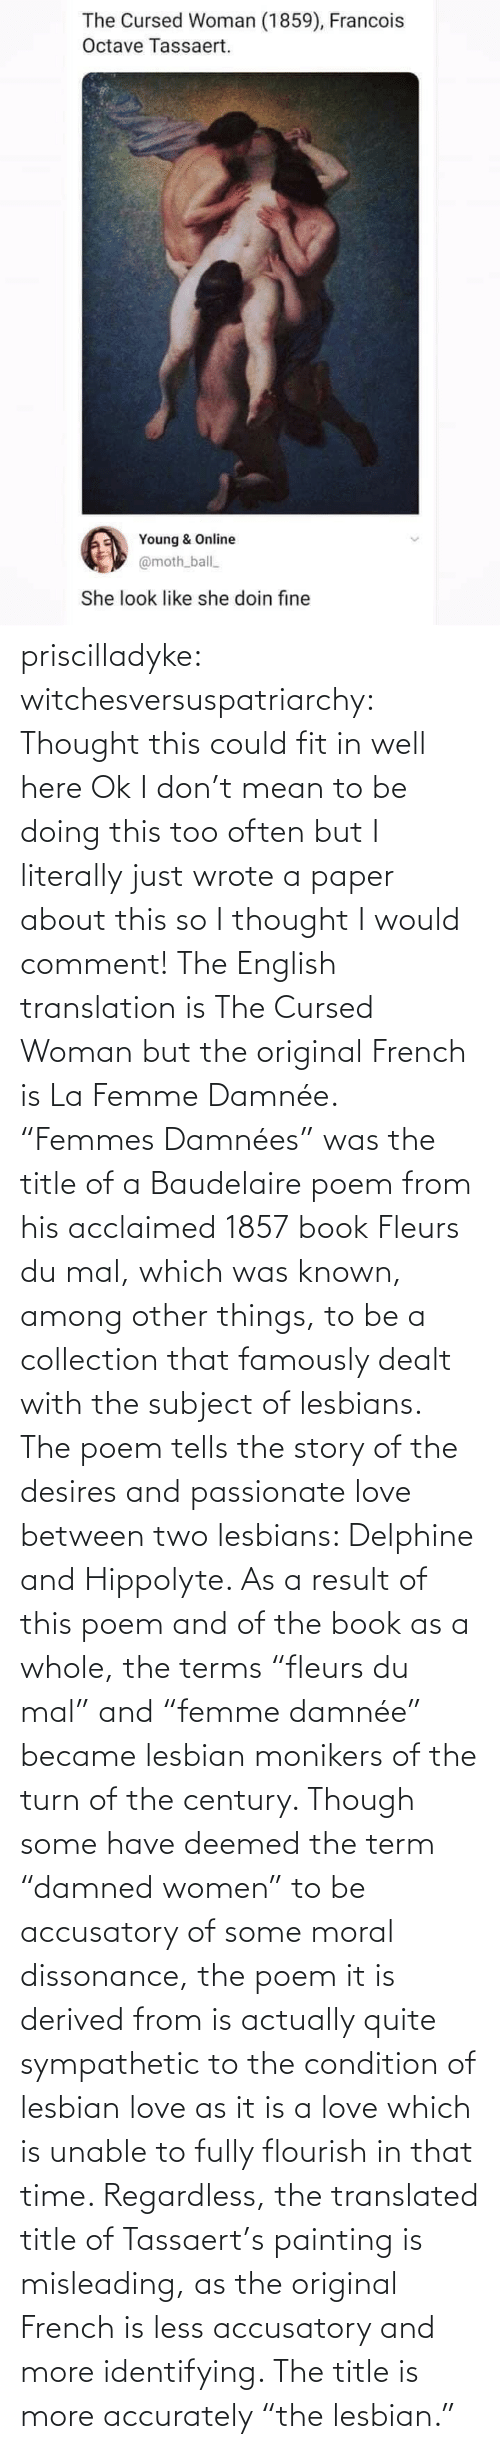 "though: priscilladyke:  witchesversuspatriarchy: Thought this could fit in well here   Ok I don't mean to be doing this too often but I literally just wrote a paper about this so I thought I would comment! The English translation is The Cursed Woman but the original French is La Femme Damnée. ""Femmes Damnées"" was the title of a Baudelaire poem from his acclaimed 1857 book Fleurs du mal, which was known, among other things, to be a collection that famously dealt with the subject of lesbians. The poem tells the story of the desires and passionate love between two lesbians:  Delphine and Hippolyte. As a result of this poem and of the book as a whole, the terms ""fleurs du mal"" and ""femme damnée"" became lesbian monikers of the turn of the century. Though some have deemed the term ""damned women"" to be accusatory of some moral dissonance, the poem it is derived from is actually quite sympathetic to the condition of lesbian love as it is a love which is unable to fully flourish in that time. Regardless, the translated title of Tassaert's painting is misleading, as the original French is less accusatory and more identifying. The title is more accurately ""the lesbian."""